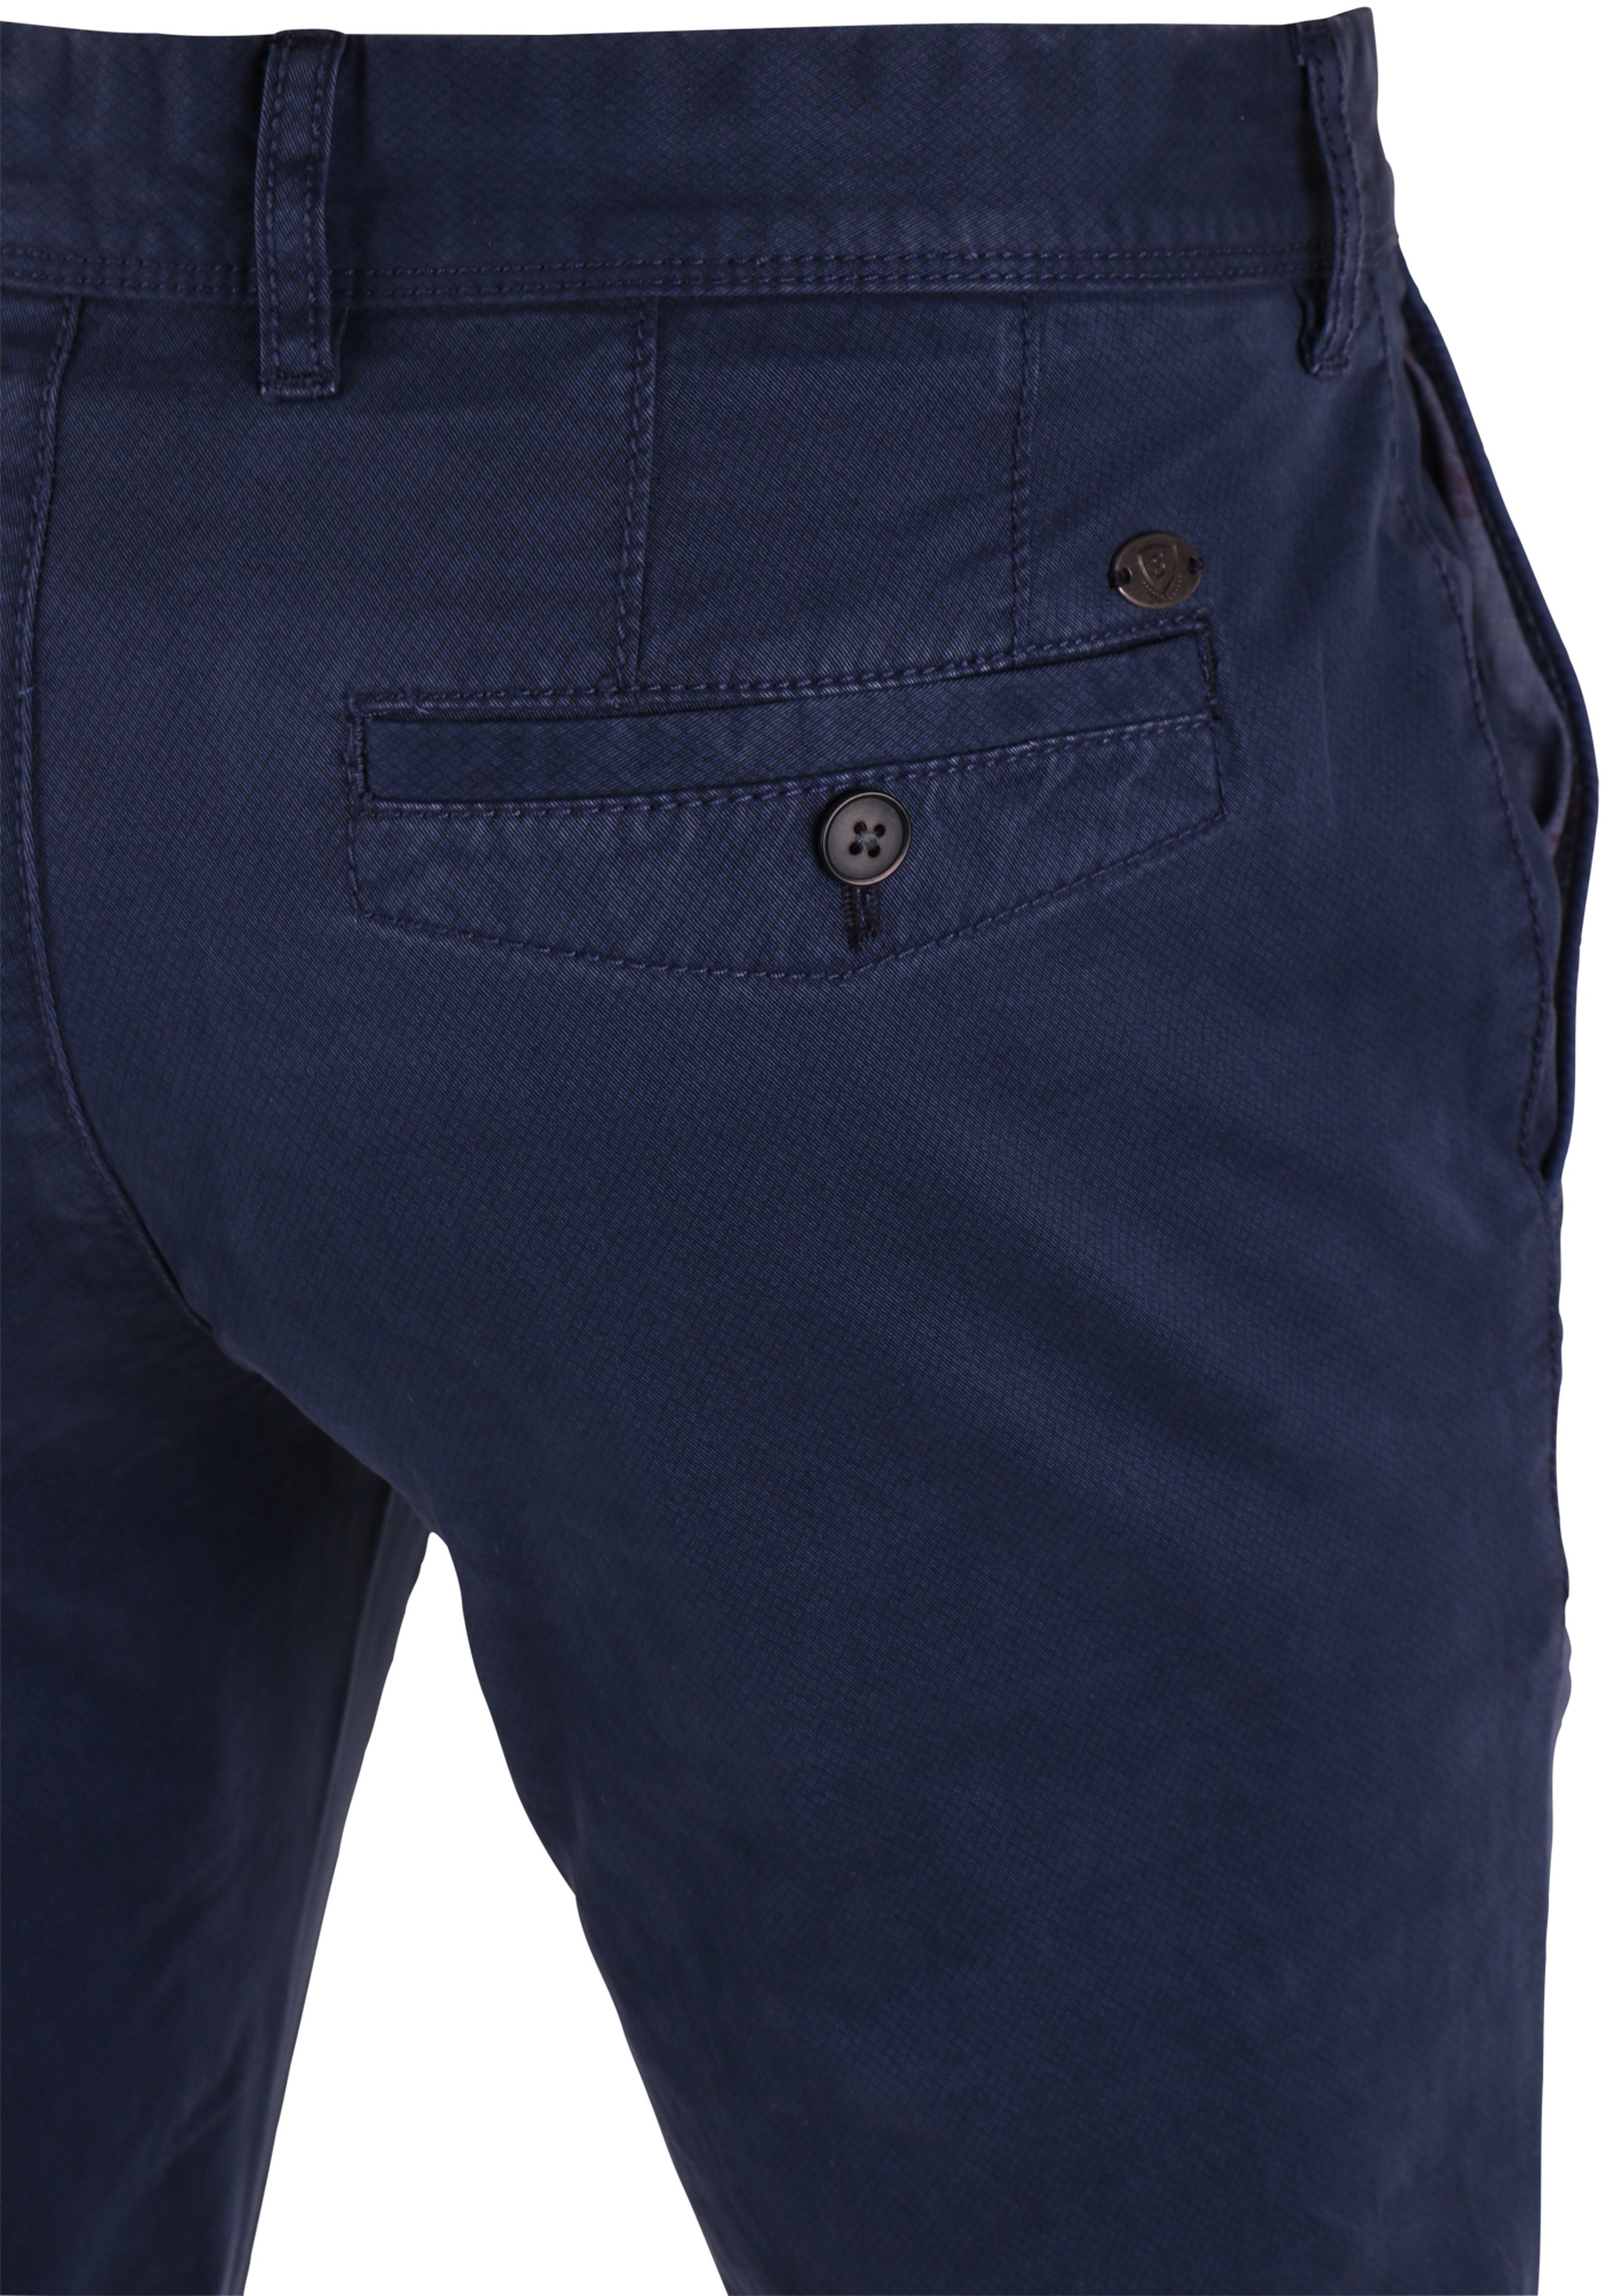 Suitable Chino Broek Donkerblauw Print foto 4